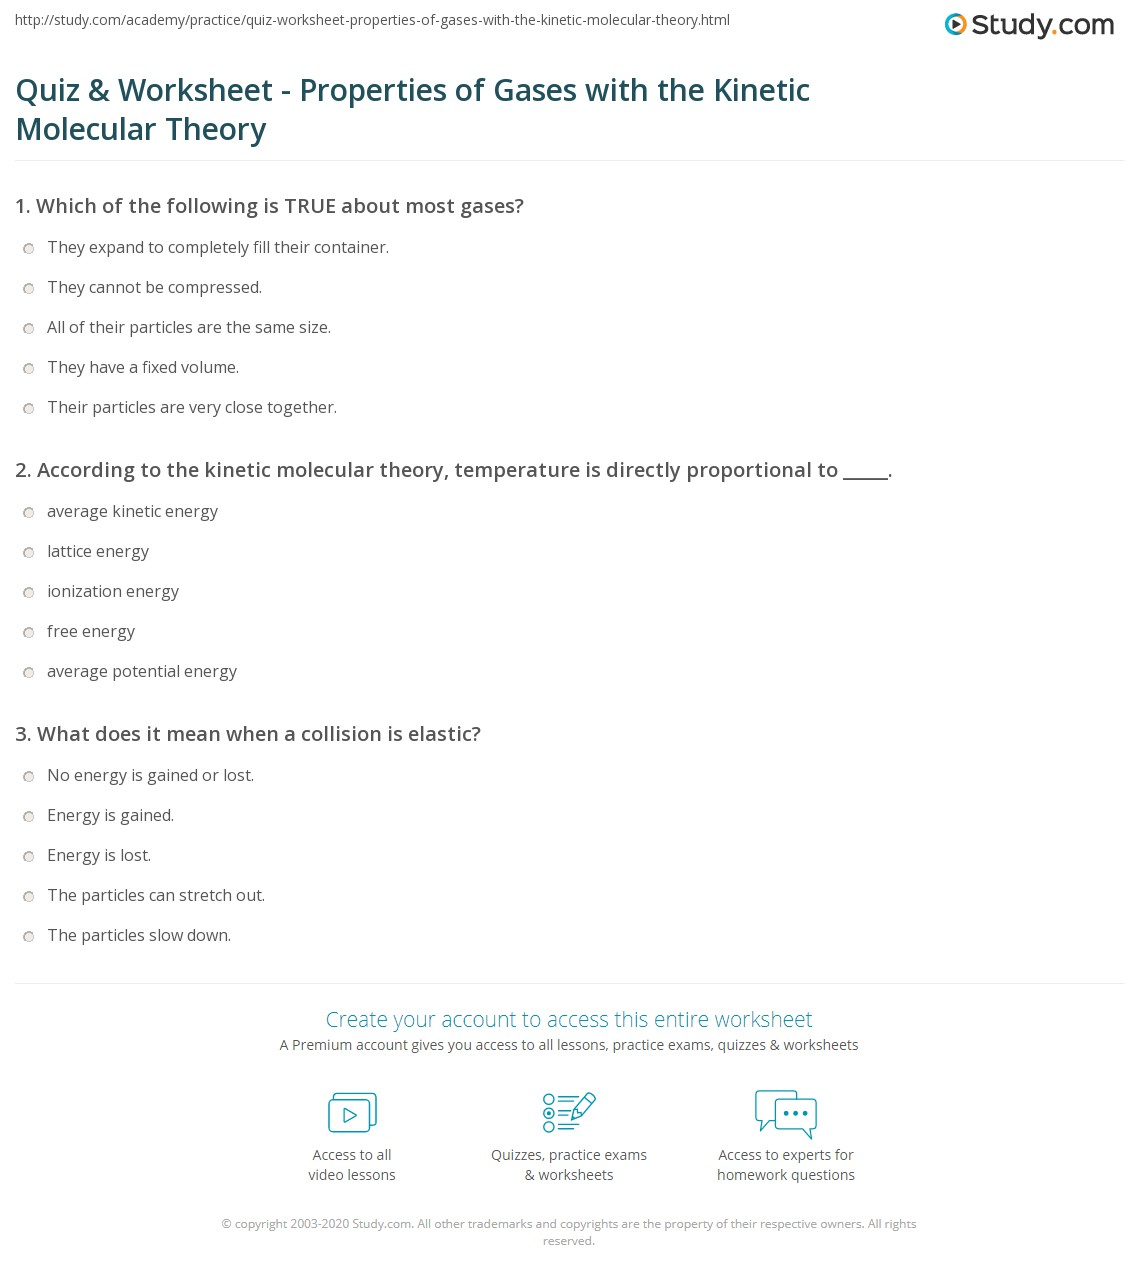 Quiz & Worksheet - Properties of Gases with the Kinetic Molecular ...